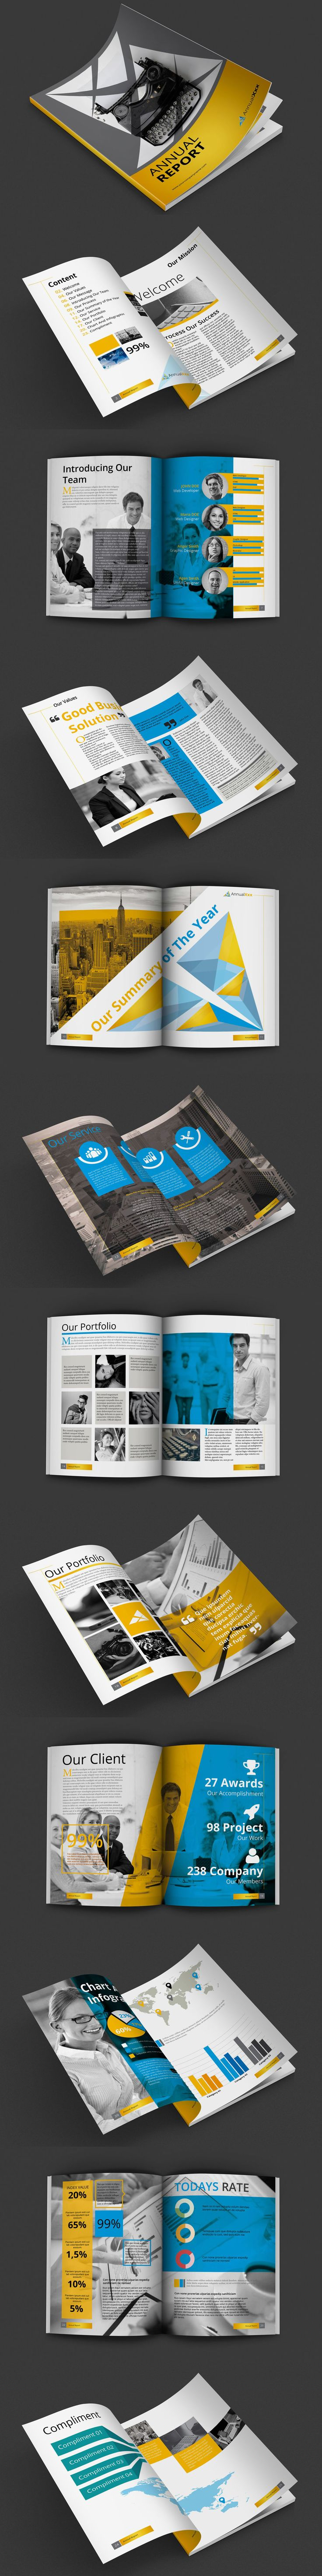 Annual Report Identity Pack - Template